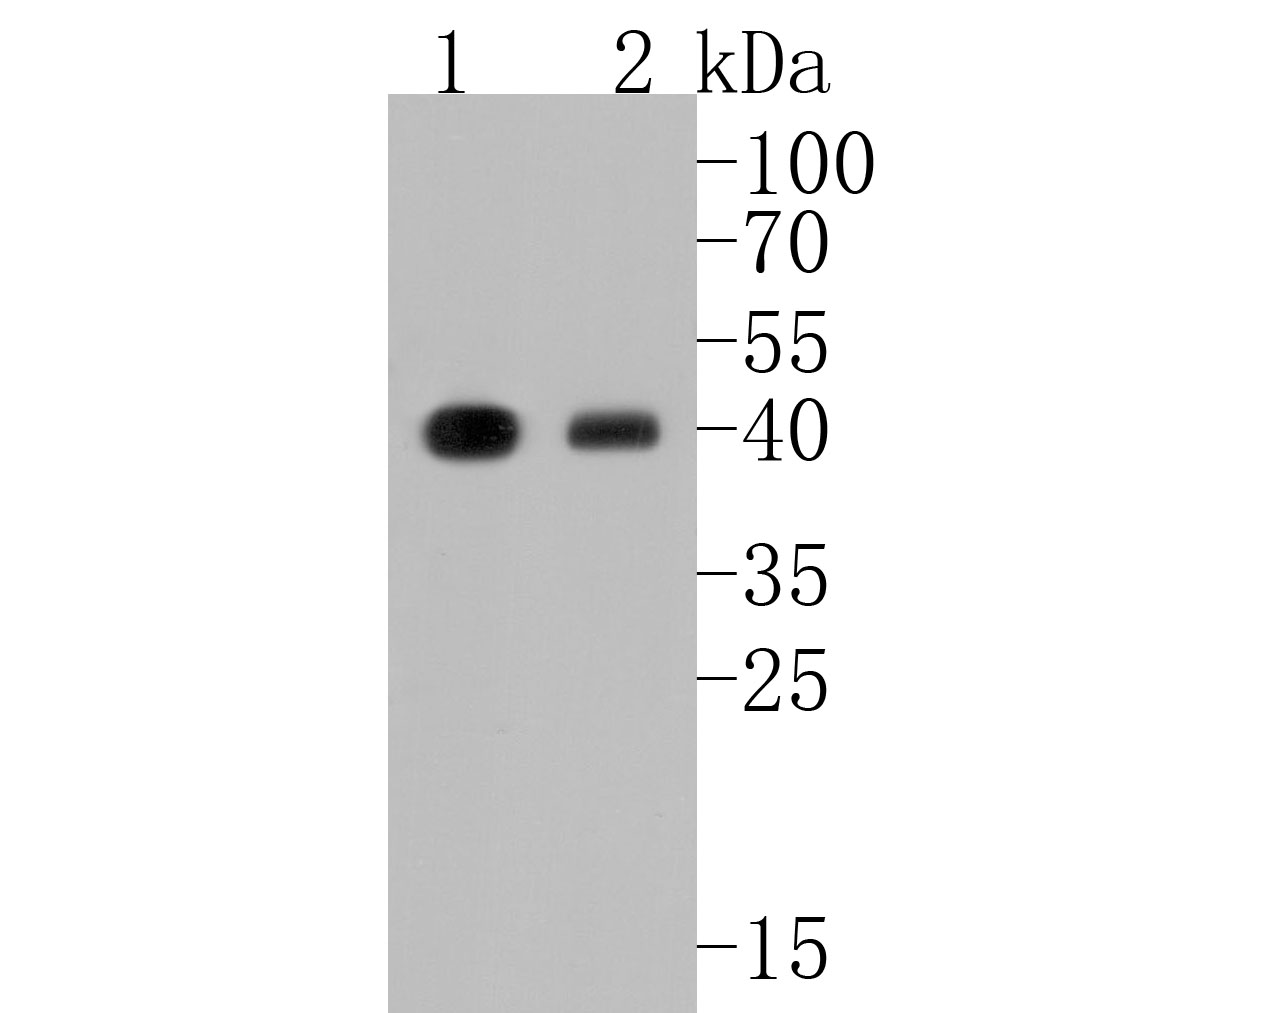 Western blot analysis of MHC class I on different lysates. Proteins were transferred to a PVDF membrane and blocked with 5% BSA in PBS for 1 hour at room temperature. The primary antibody (ET1702-47, 1/500) was used in 5% BSA at room temperature for 2 hours. Goat Anti-Rabbit IgG - HRP Secondary Antibody (HA1001) at 1:5,000 dilution was used for 1 hour at room temperature.<br /> Positive control: <br /> Lane 1: THP-1 cell lysate<br /> Lane 2: Raji cell lysate